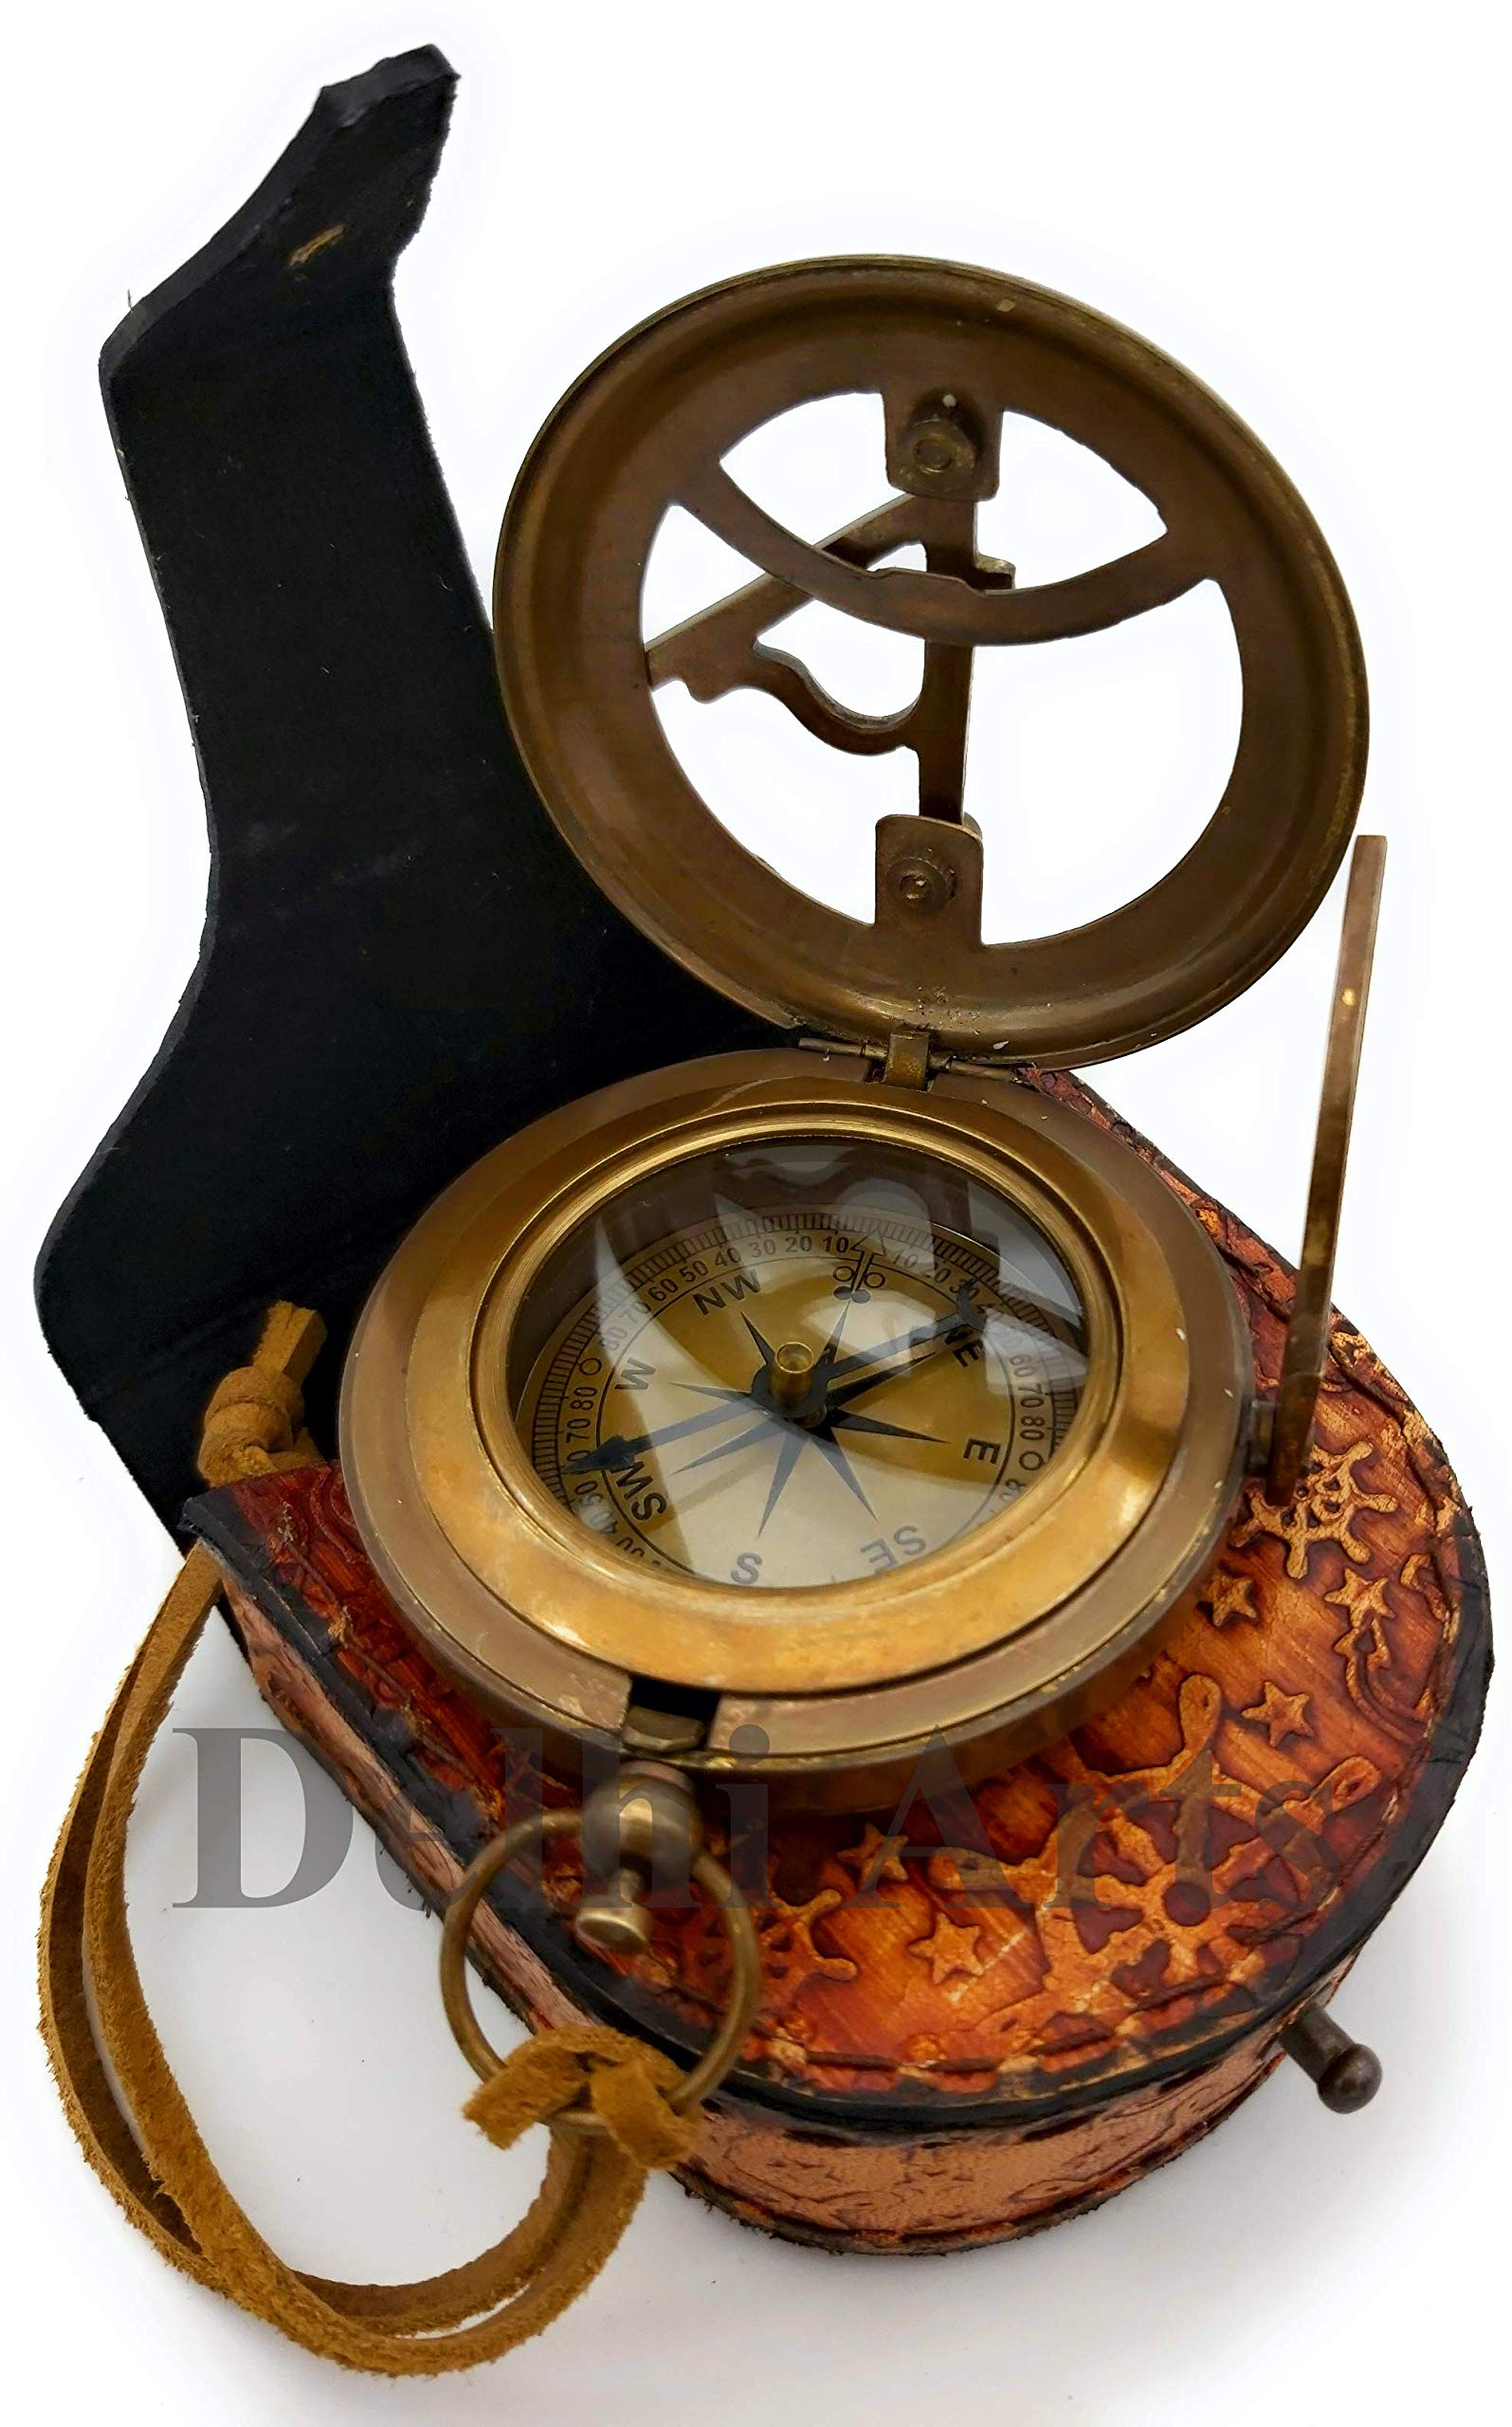 Delhi Arts Brass Sundial Compass with Leather Case and Leather Strip - Push Button Open Mechanism Vintage Compass- - Steampunk Accessory - Antiquated Finish - (Blank) by Delhi Arts